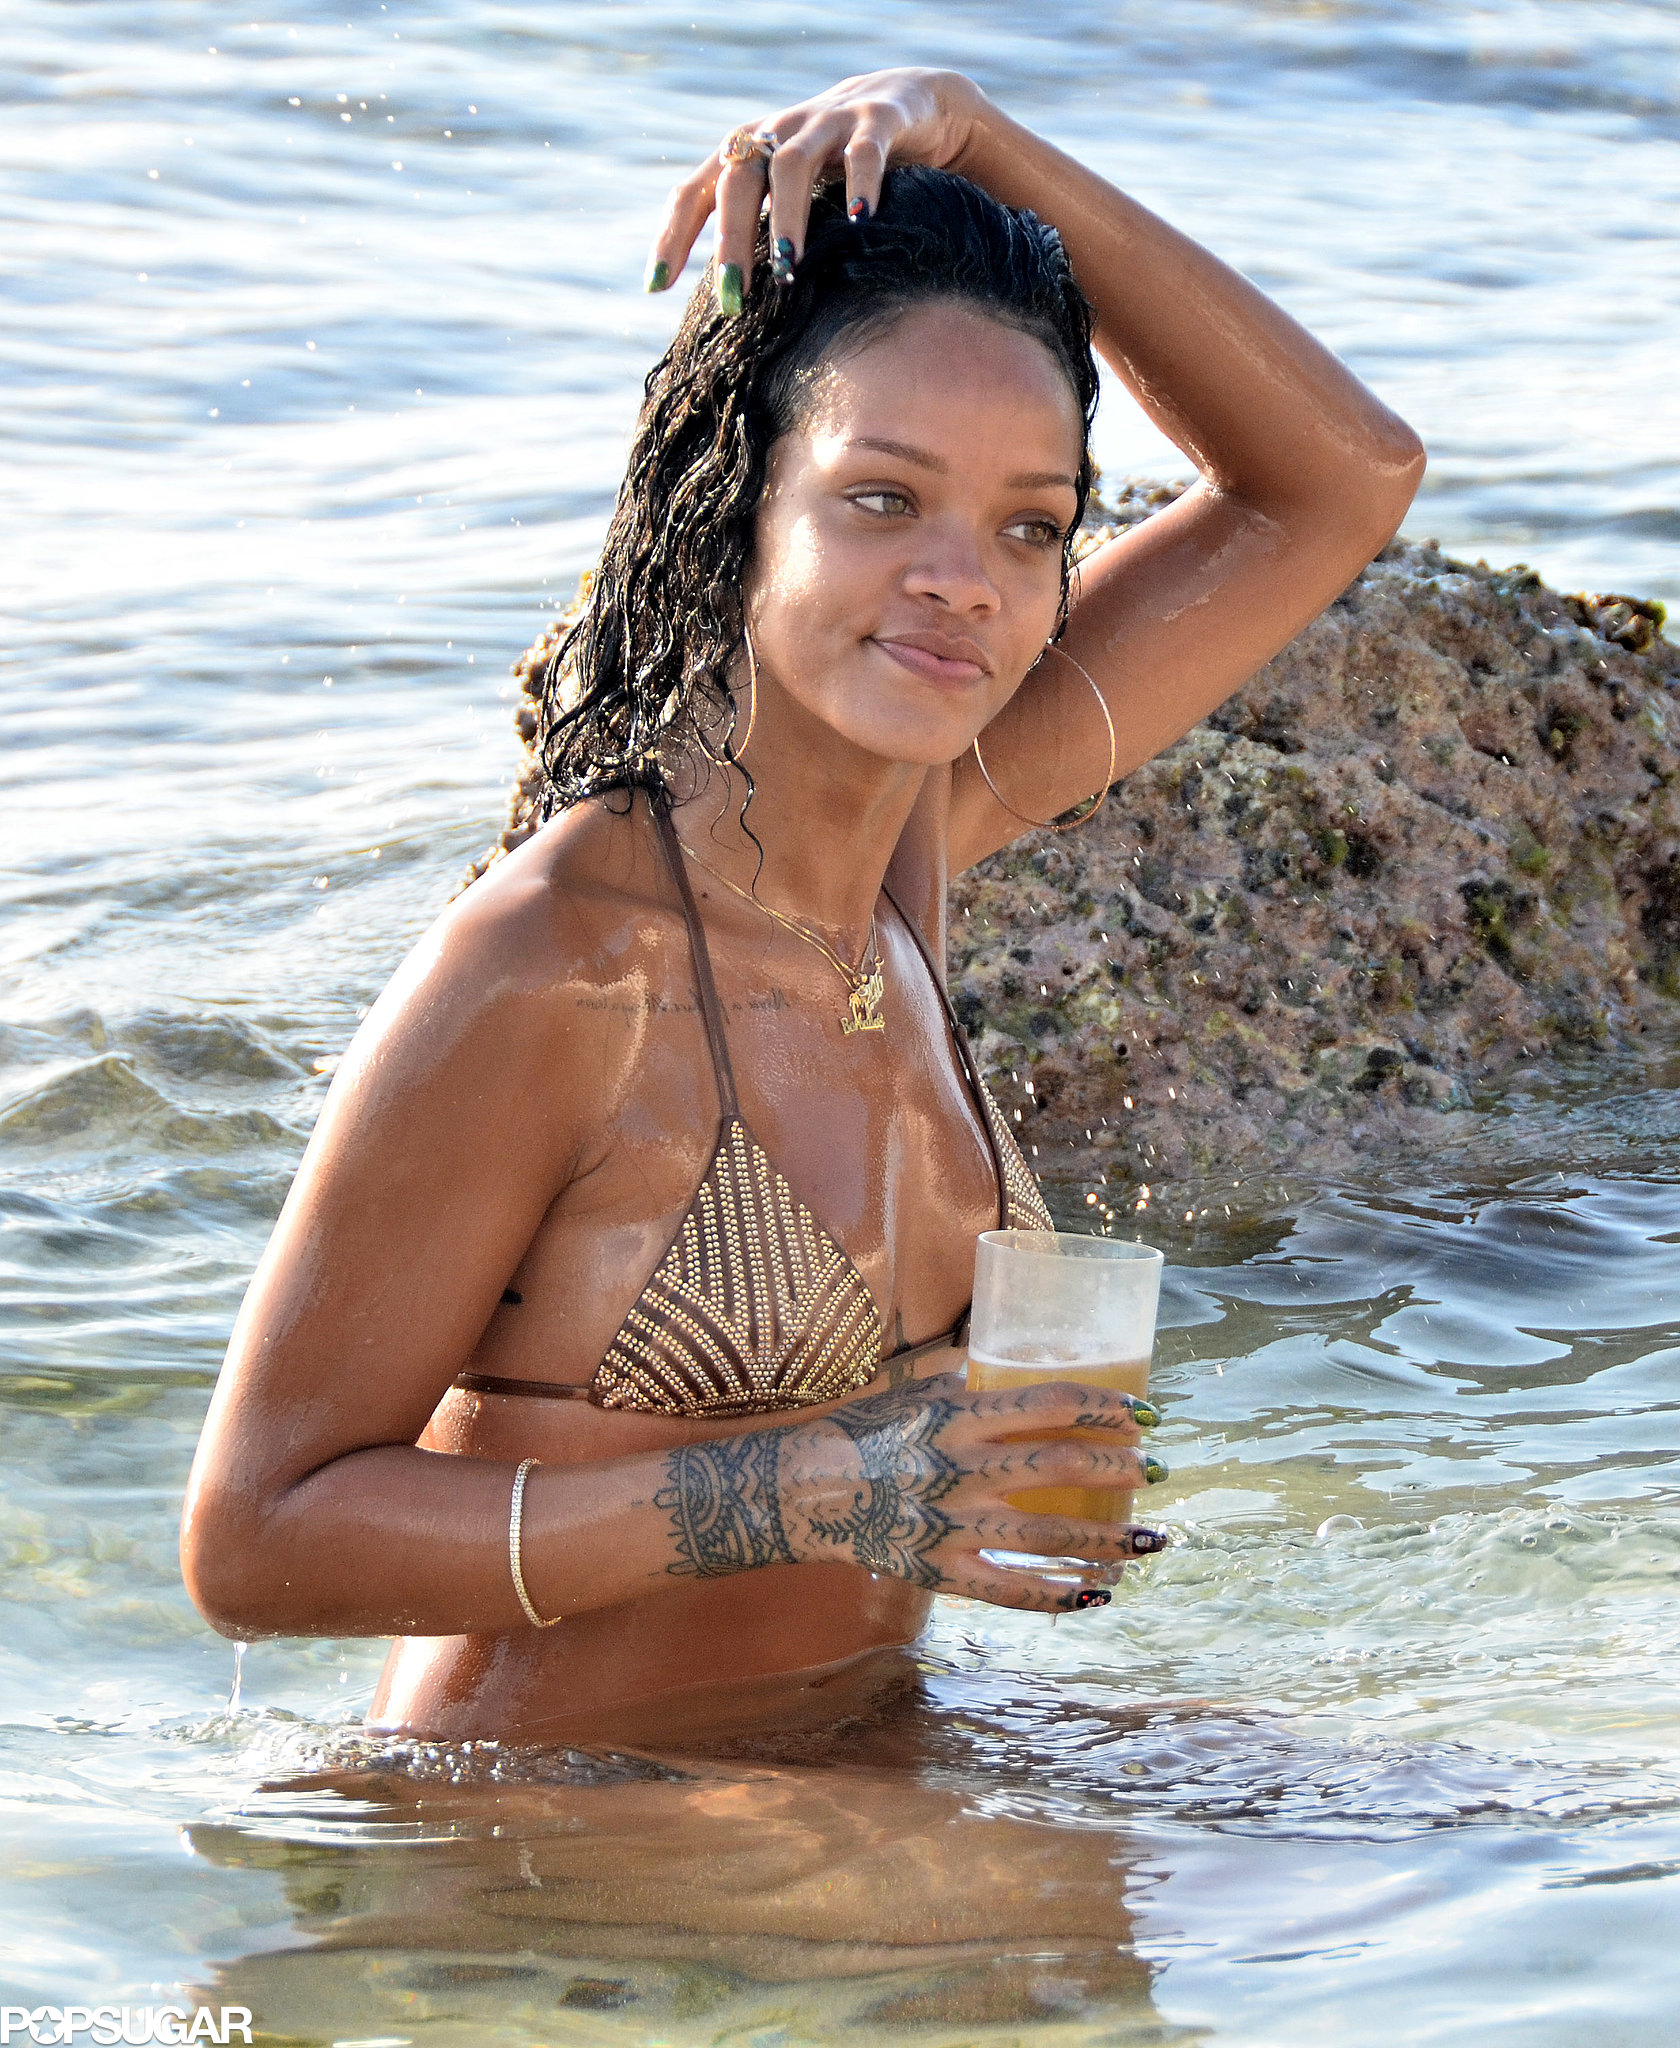 Rihanna relaxed in the water with a drink.